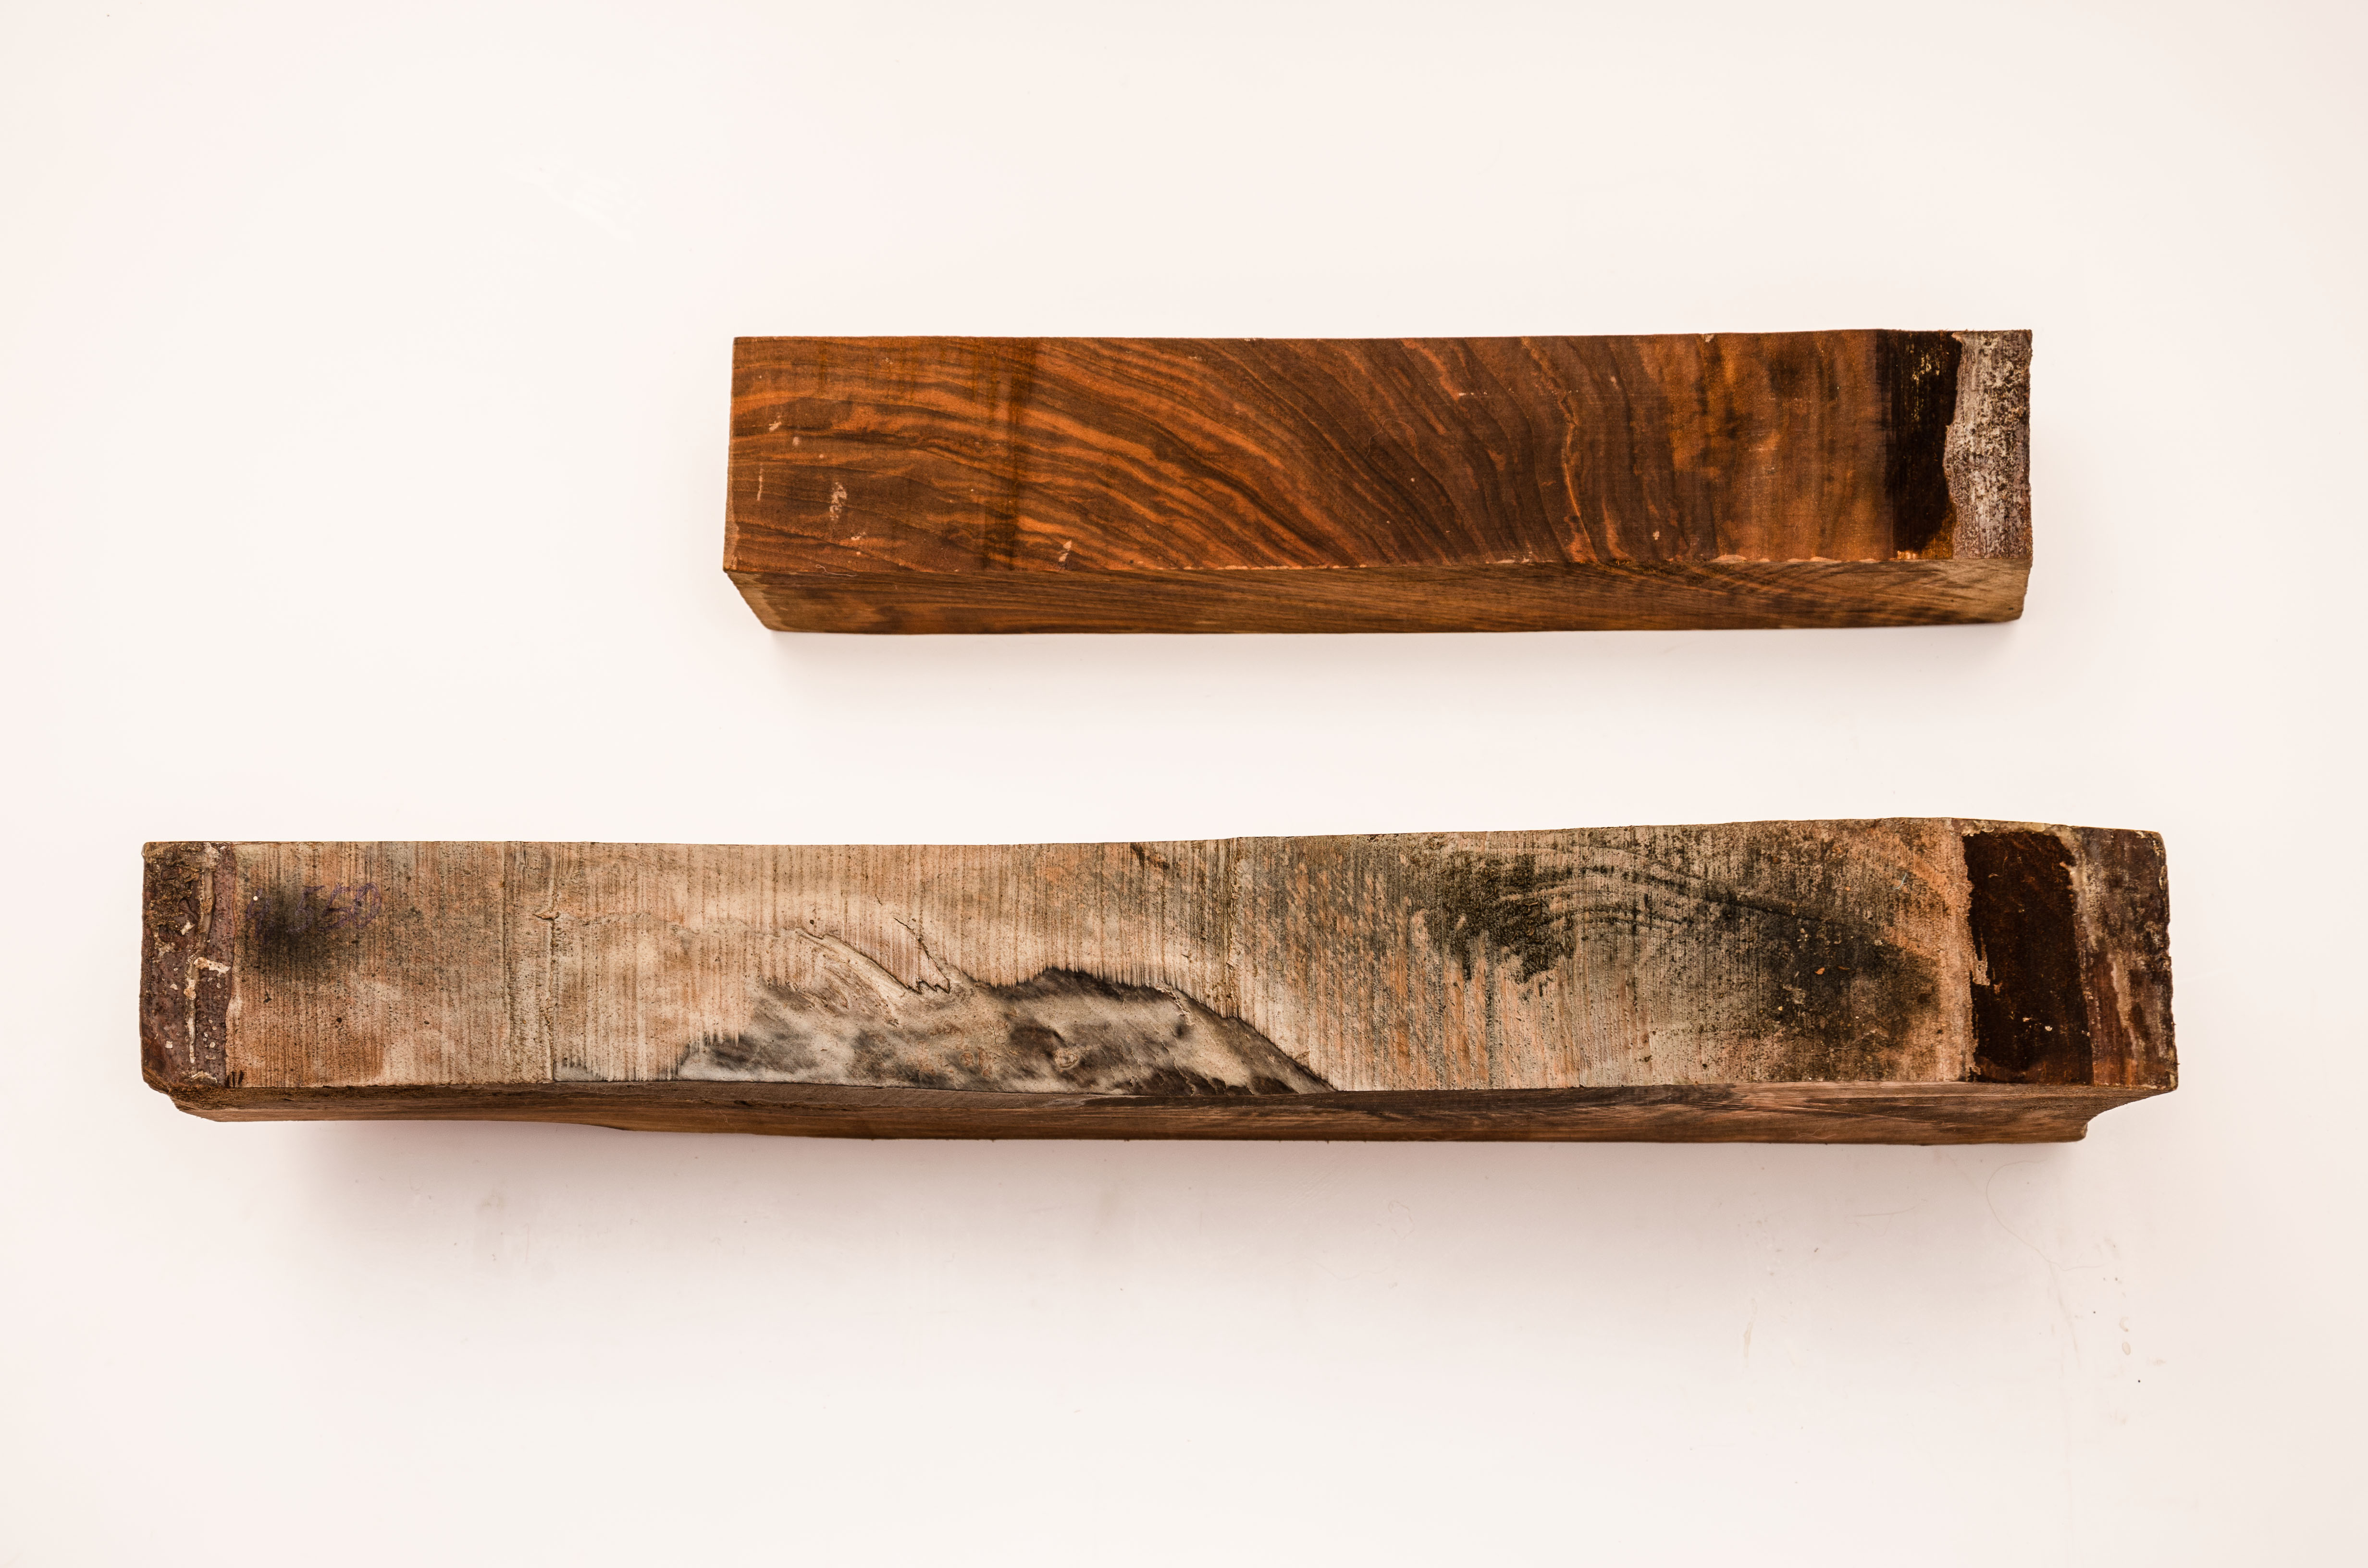 walnut_stock_blanks_for_guns_and_rifles-0562